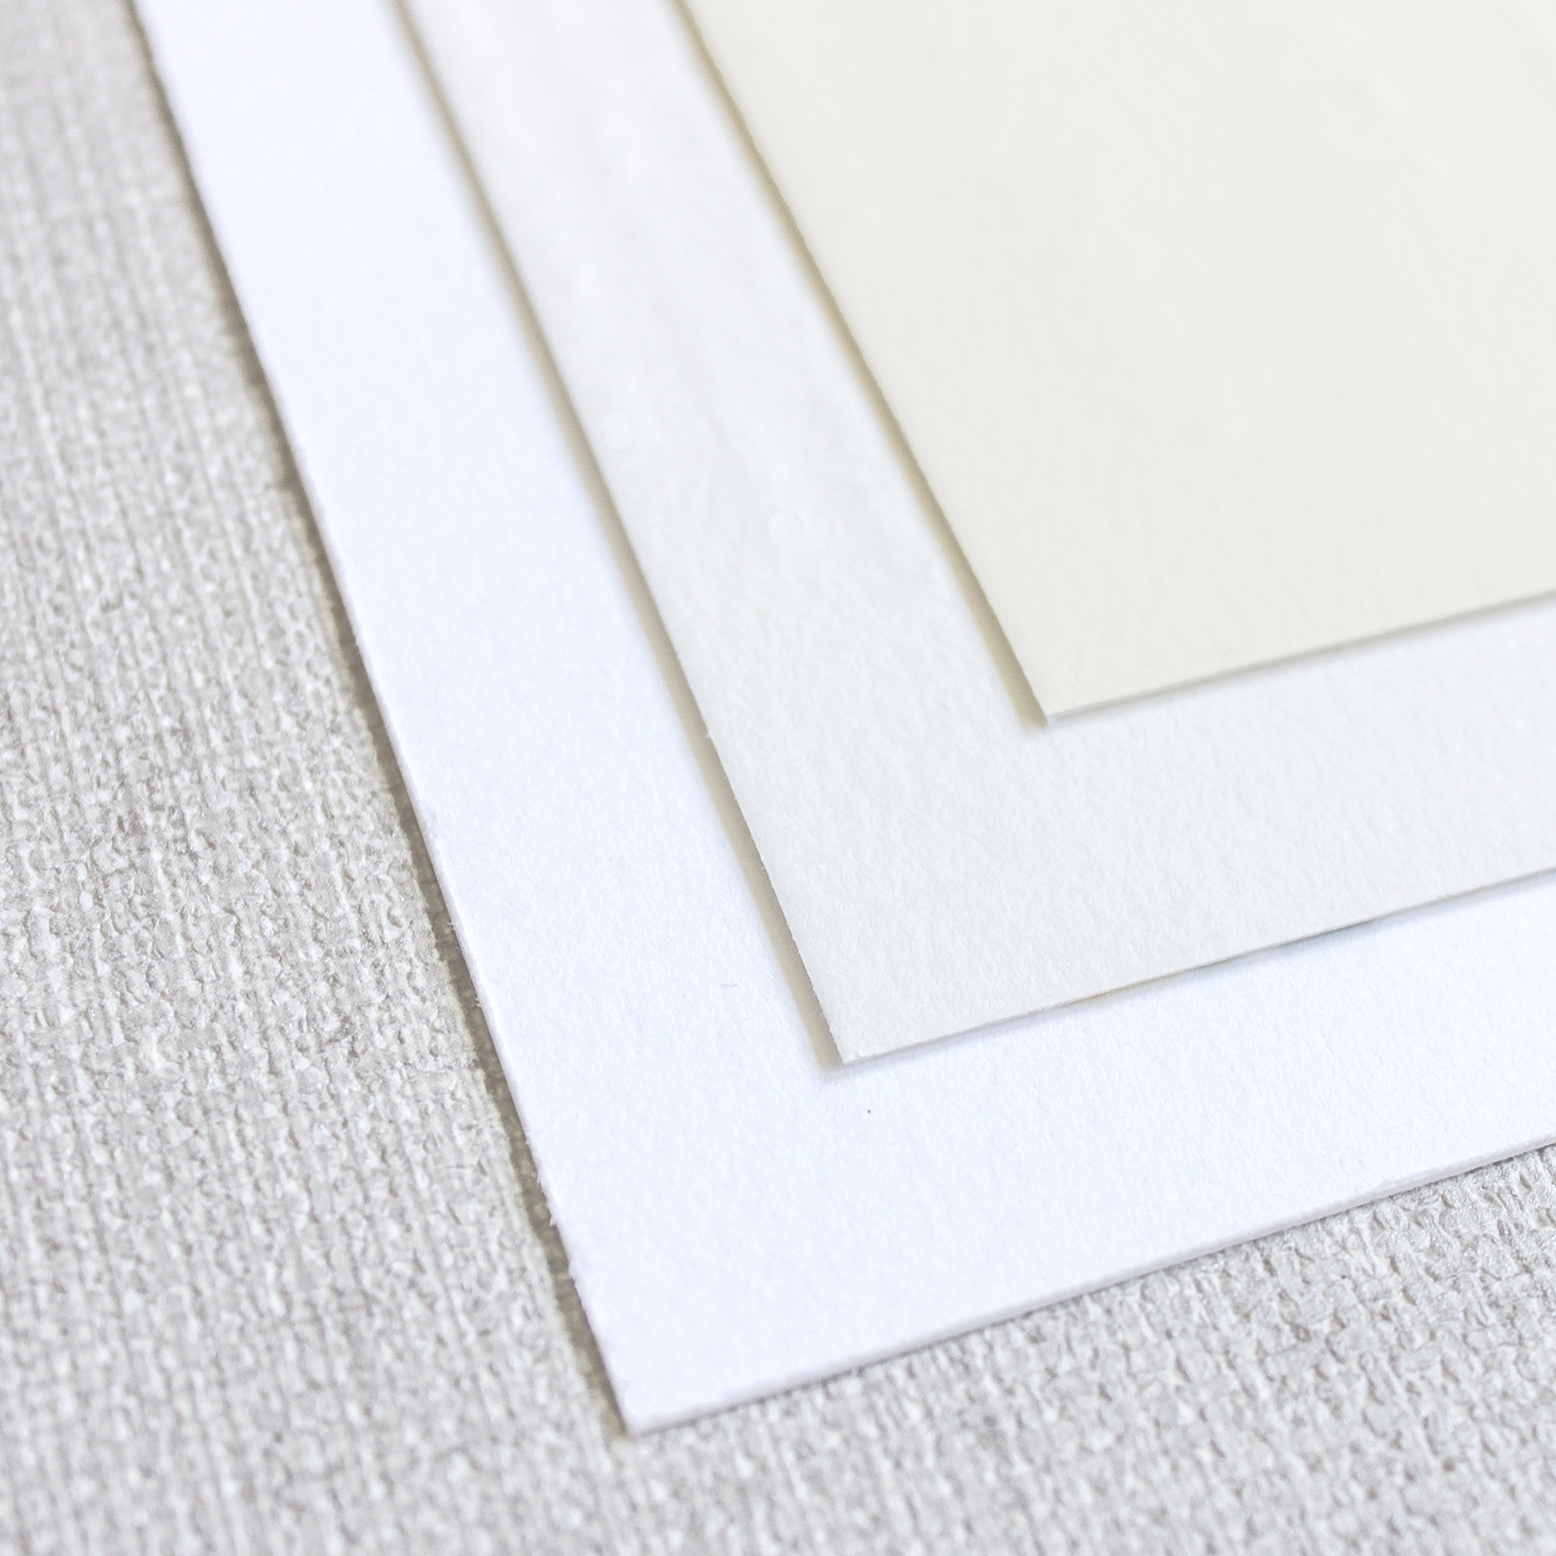 thick stock - Our thick stock for letterpress is a #220 cranes lettra in ultra white, standard white or ivory. Cranes lettra paper is soft to the touch and has a beautiful but smooth texture.